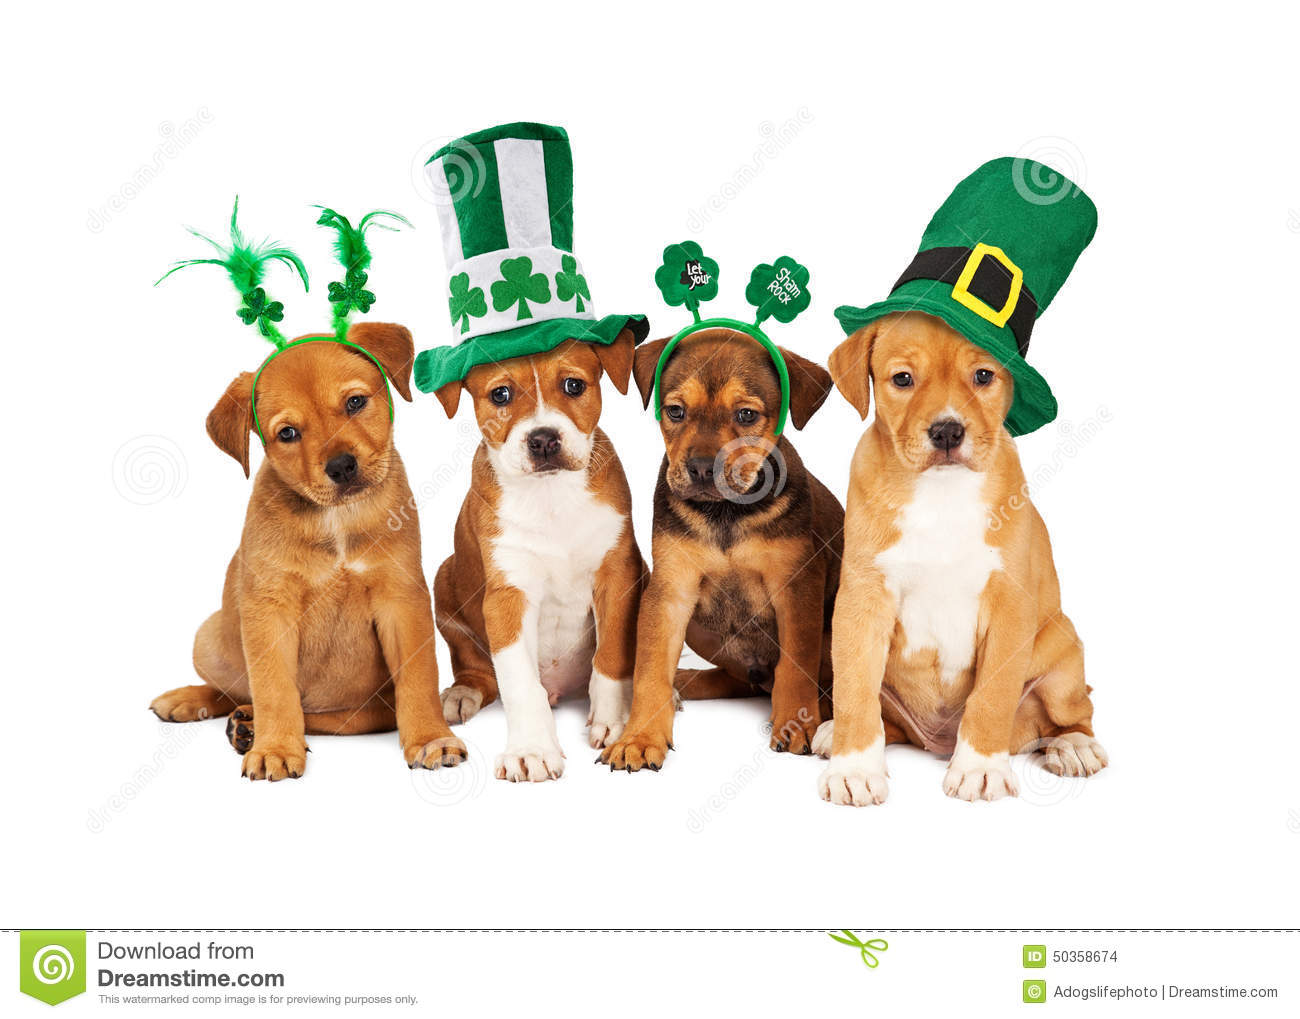 Cute Wallpaper St Pattys Day Pupppy Large St Patricks Day Dog Stock Photo Image Of Animal